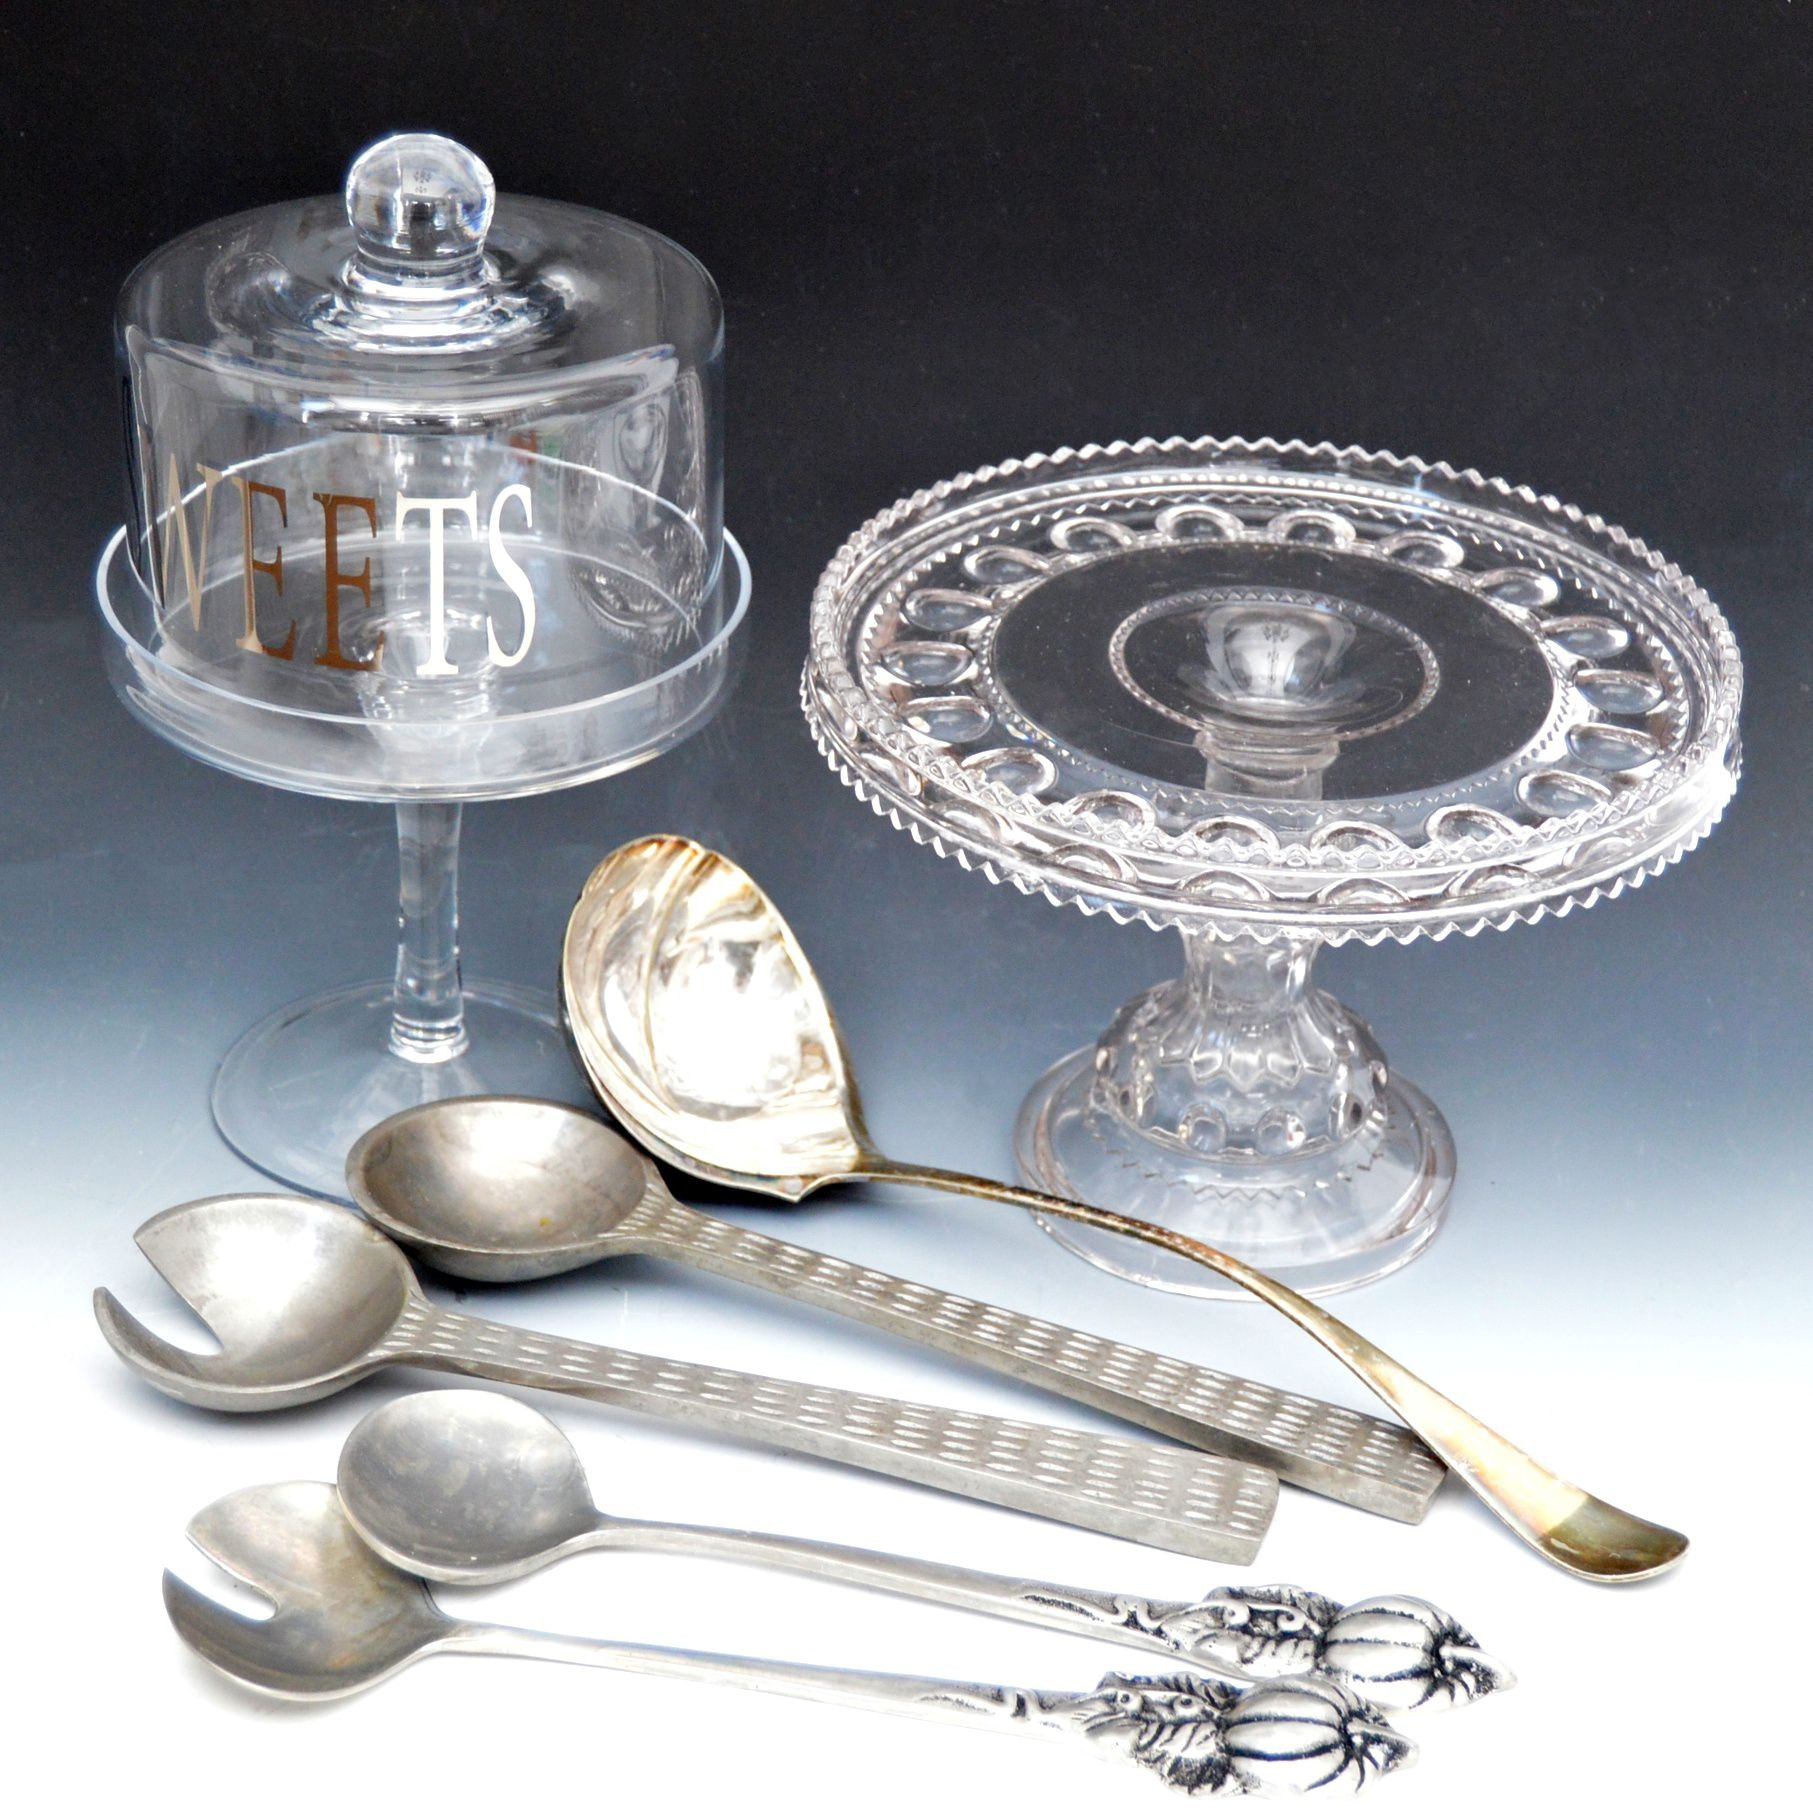 Pressed Glass Serveware with Cake Plate, Metal Serving Utensils